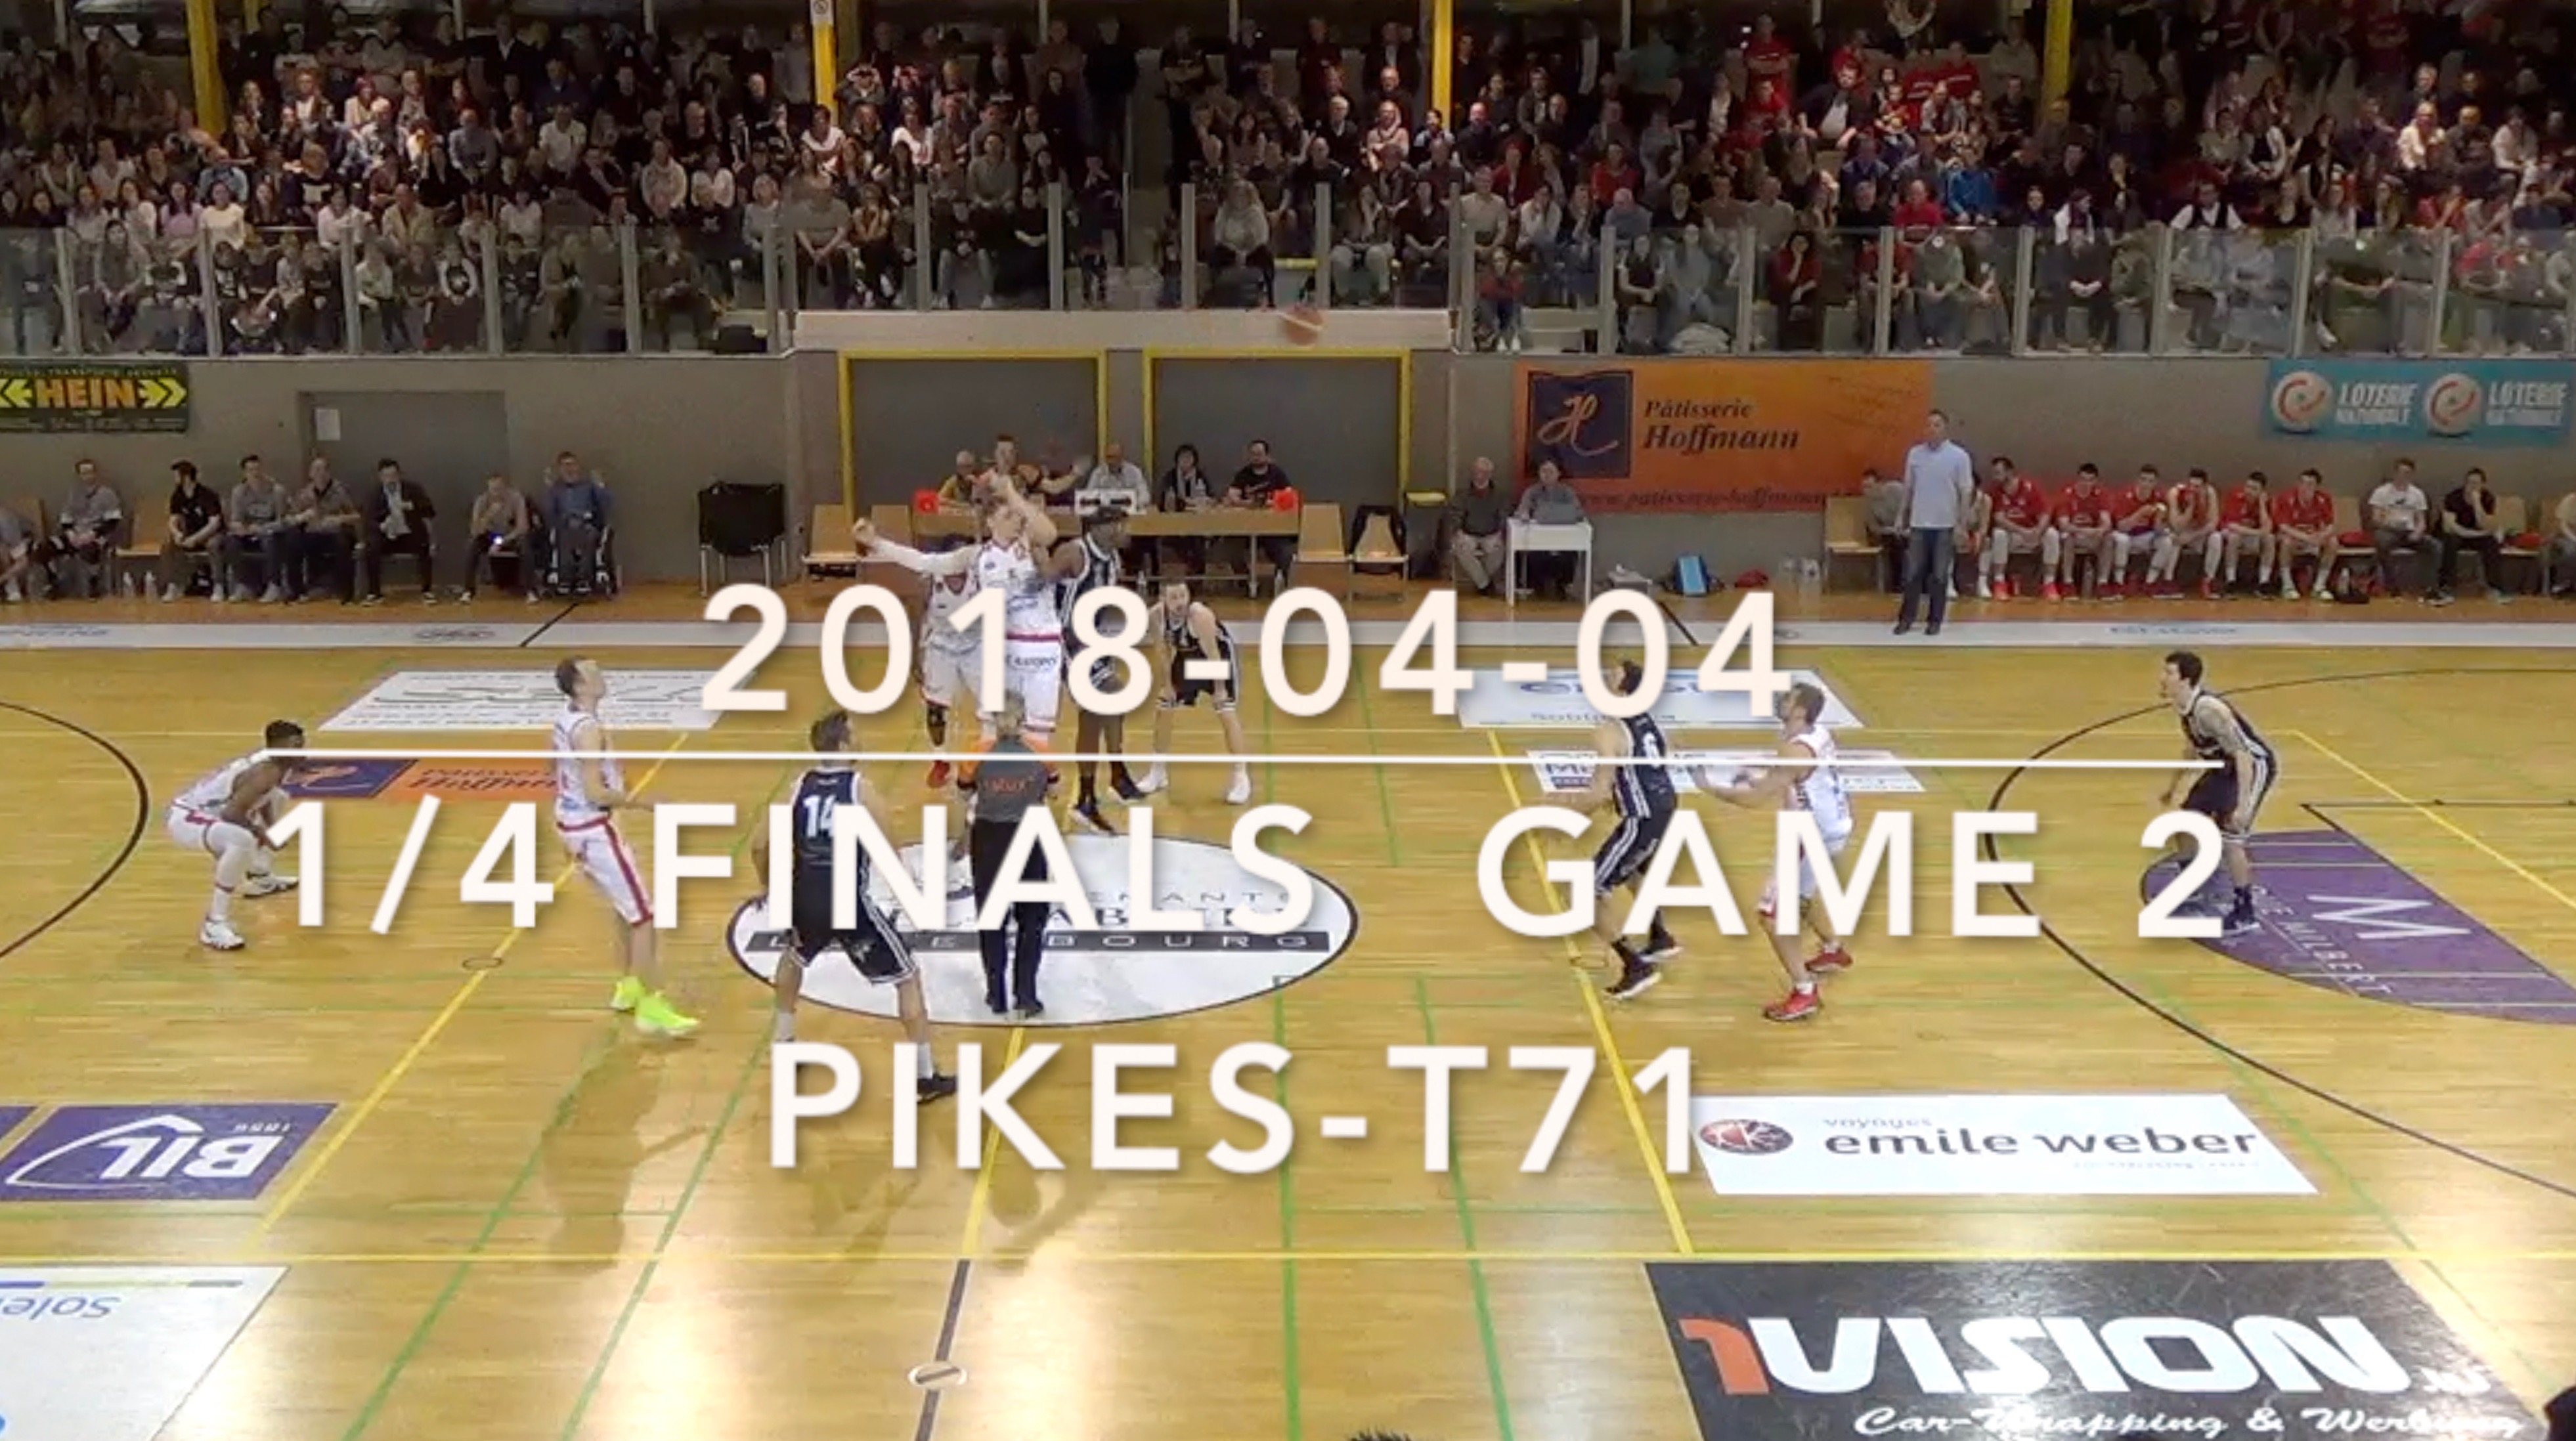 2018-04-04 game 2  1/4 finals Pikes-T71 (Pikes highlights)